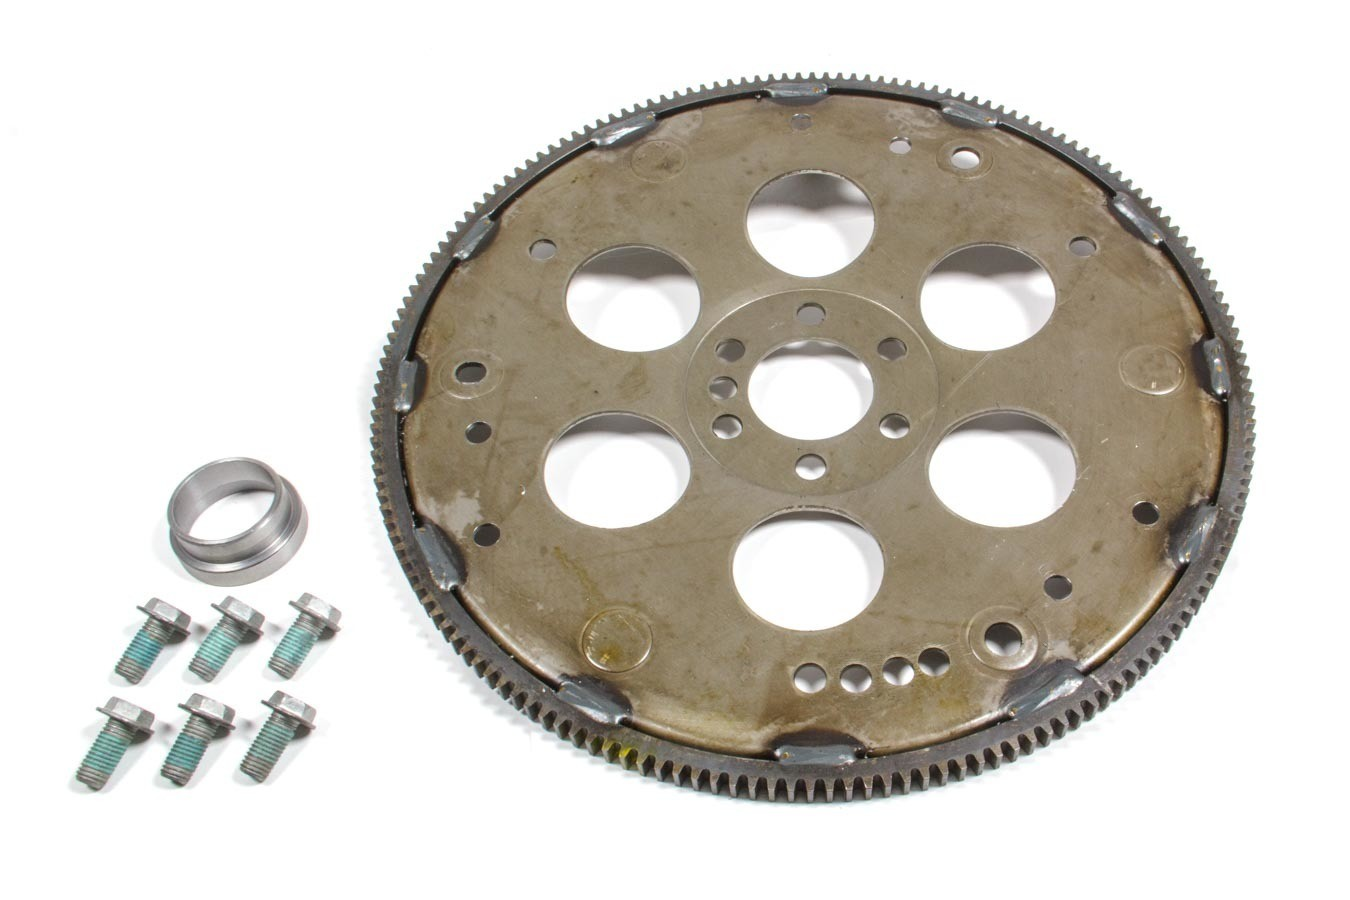 Advance Adapters 712500A Transmission Adapter, Flexplate, Flexplate Bolts/Crank Spacer Included, TH350/700r/200R4 Transmission to GM LS-Series, Kit